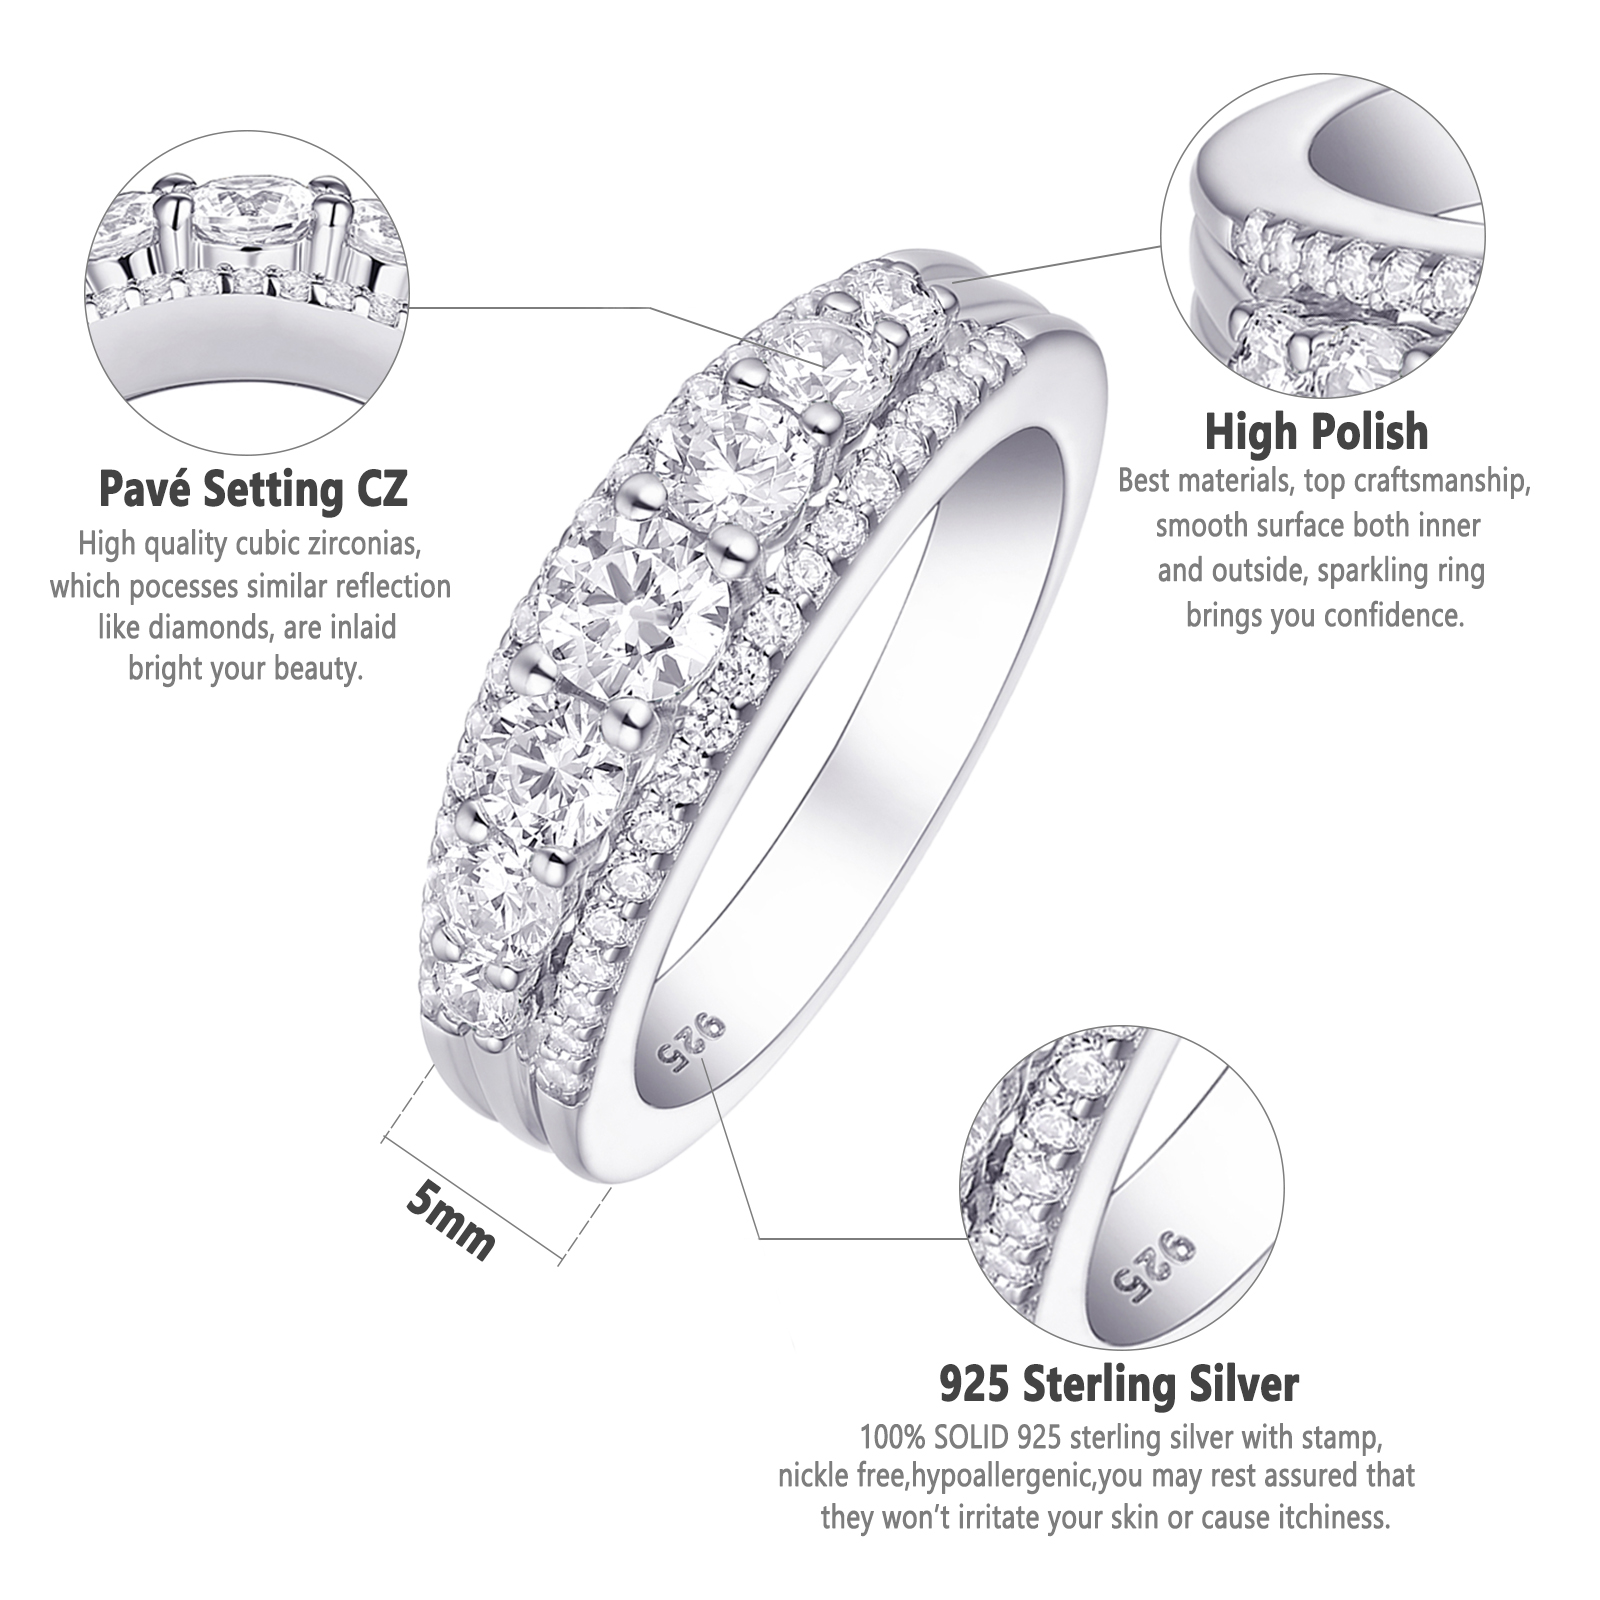 Newshe Wedding Band Eternity Ring 1.2Ct Round White Cz 925 Sterling Silver 5-12